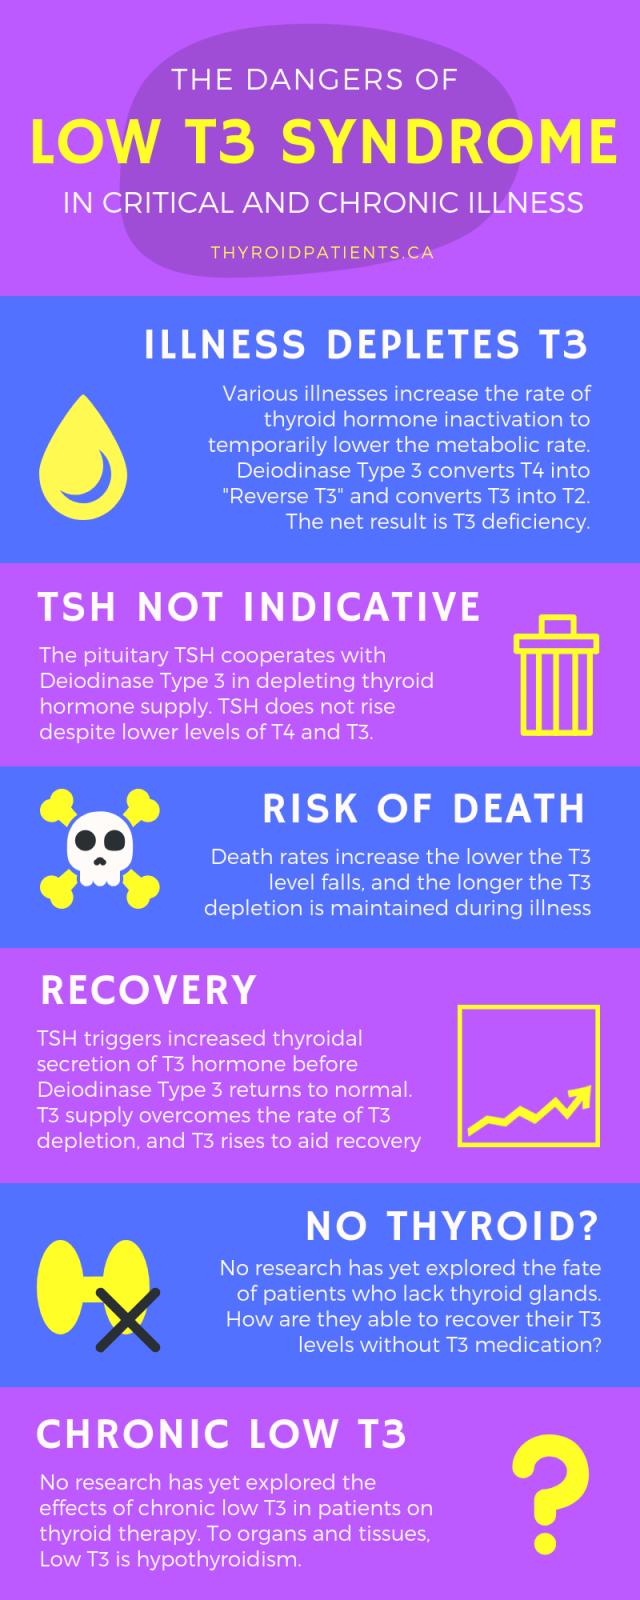 The dangers of Low T3 Syndrome